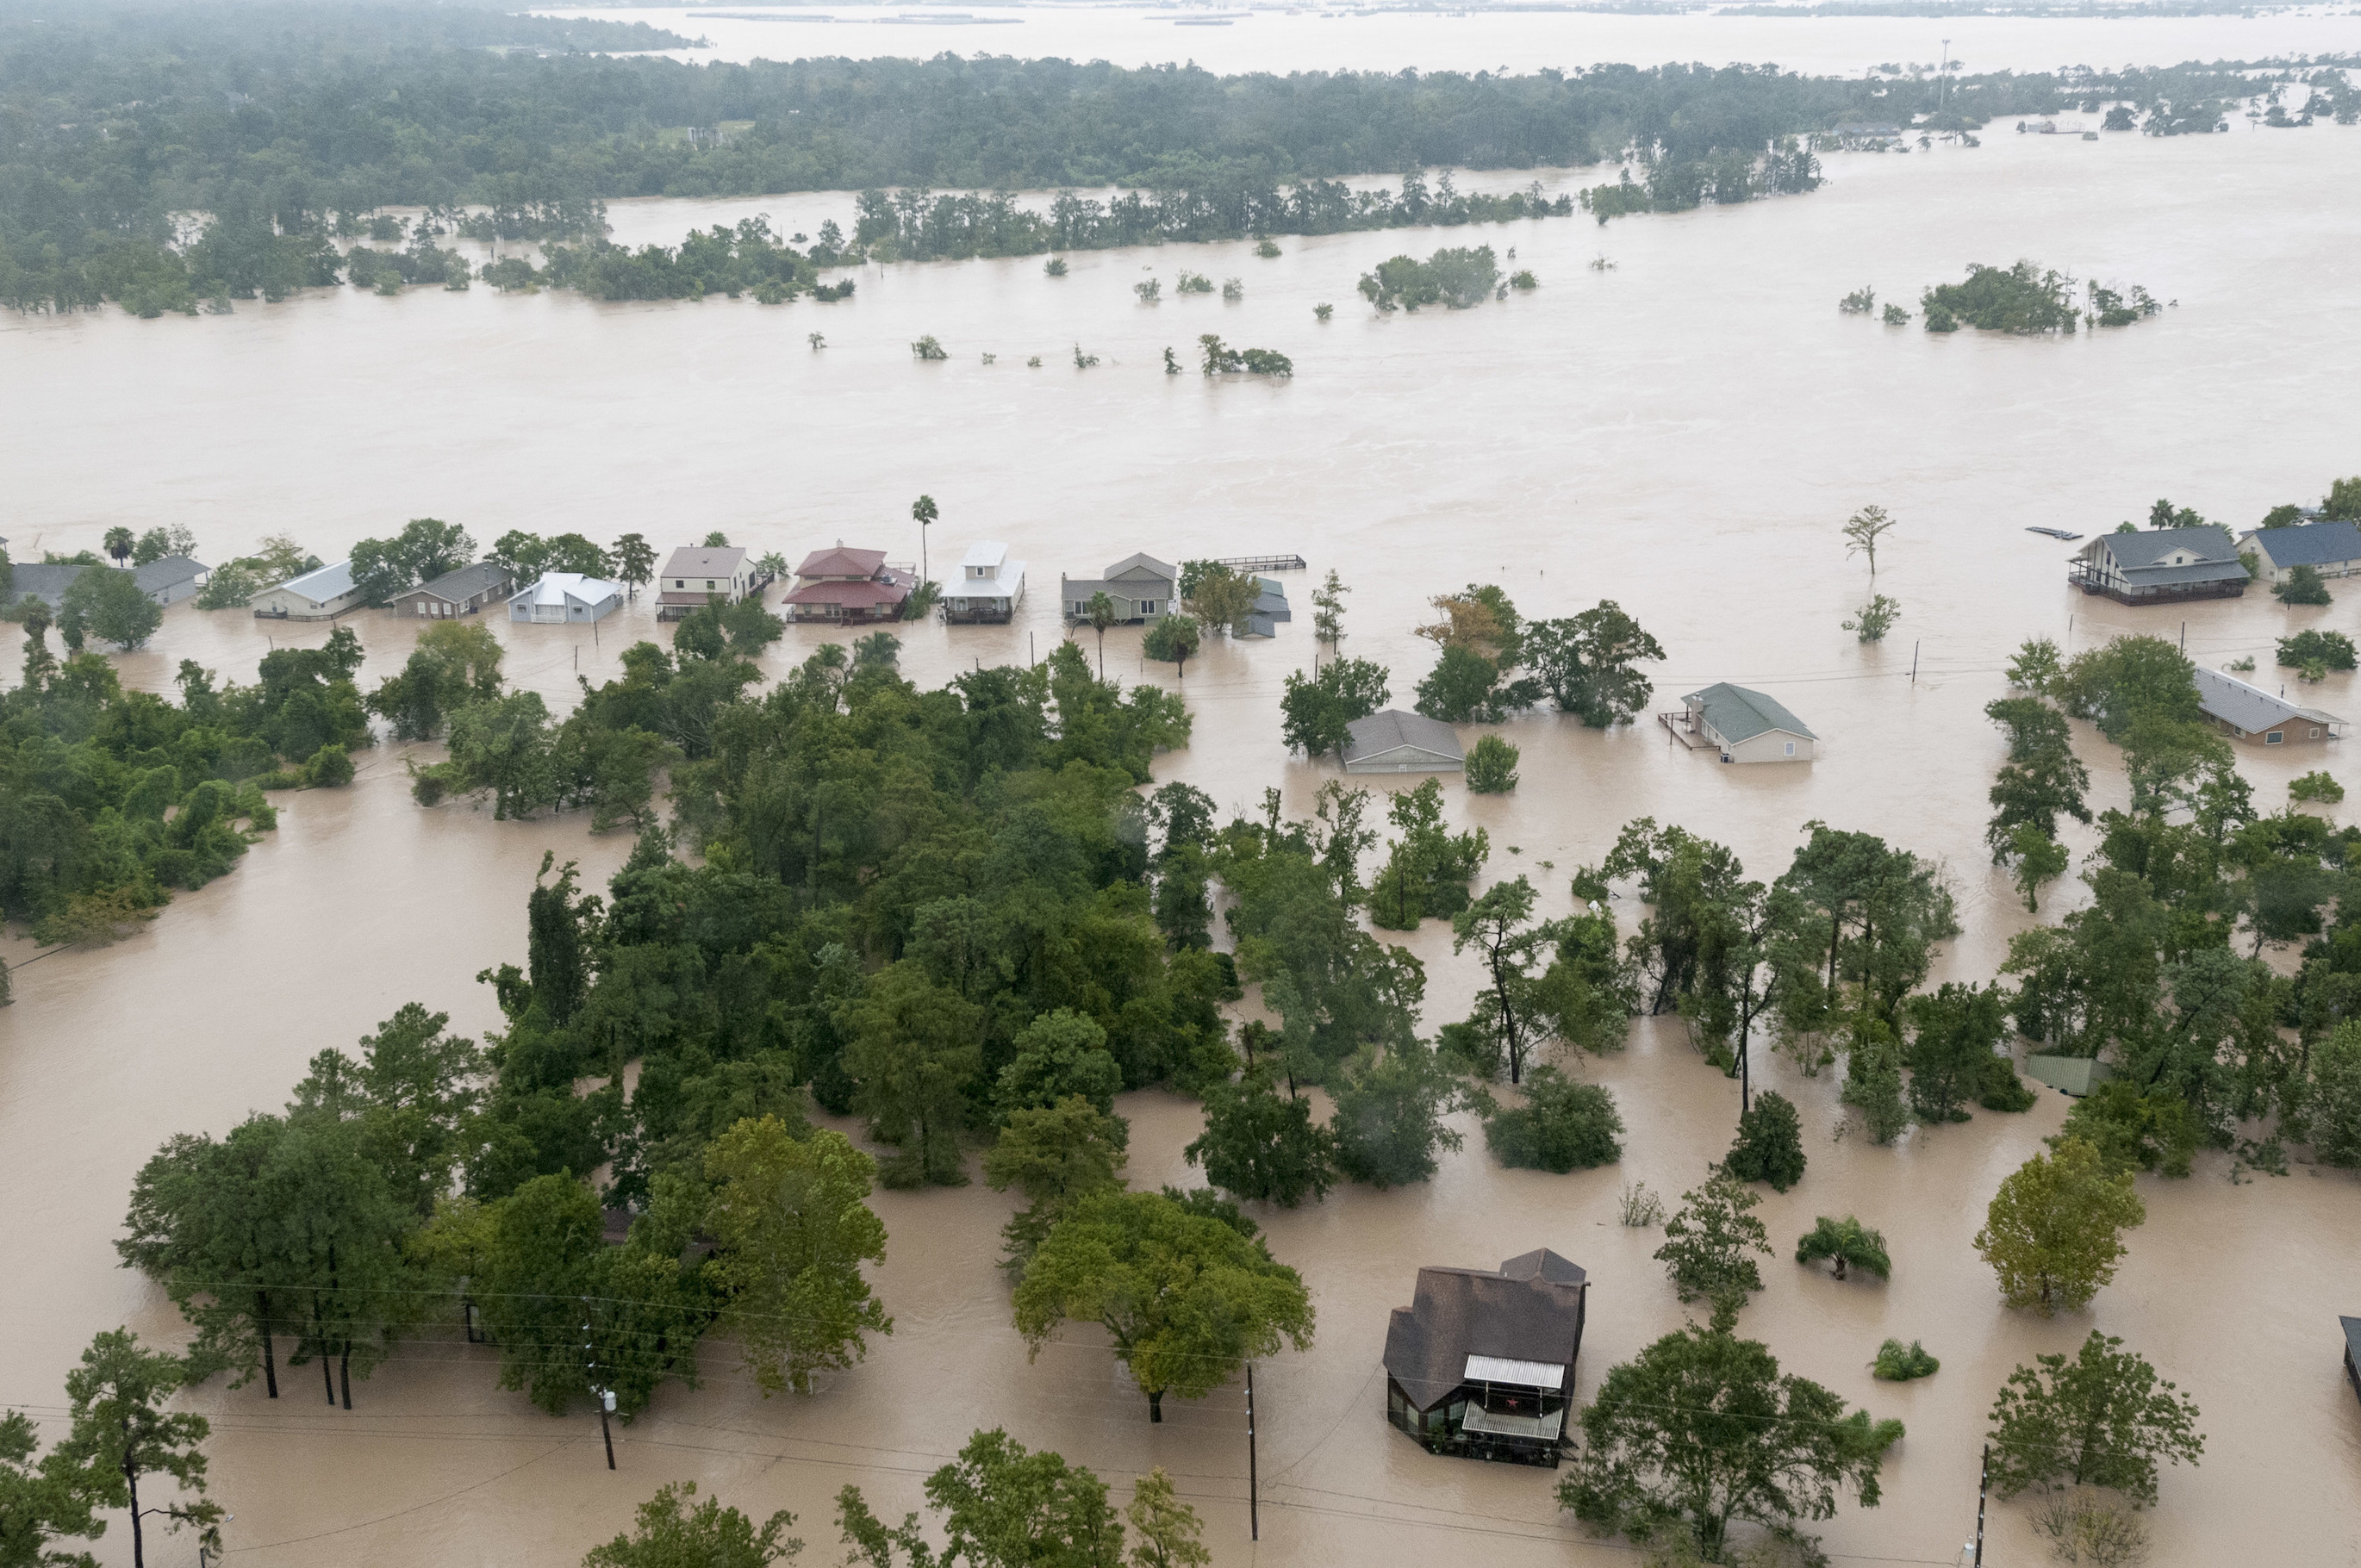 human activities can have an impact on natural disasters